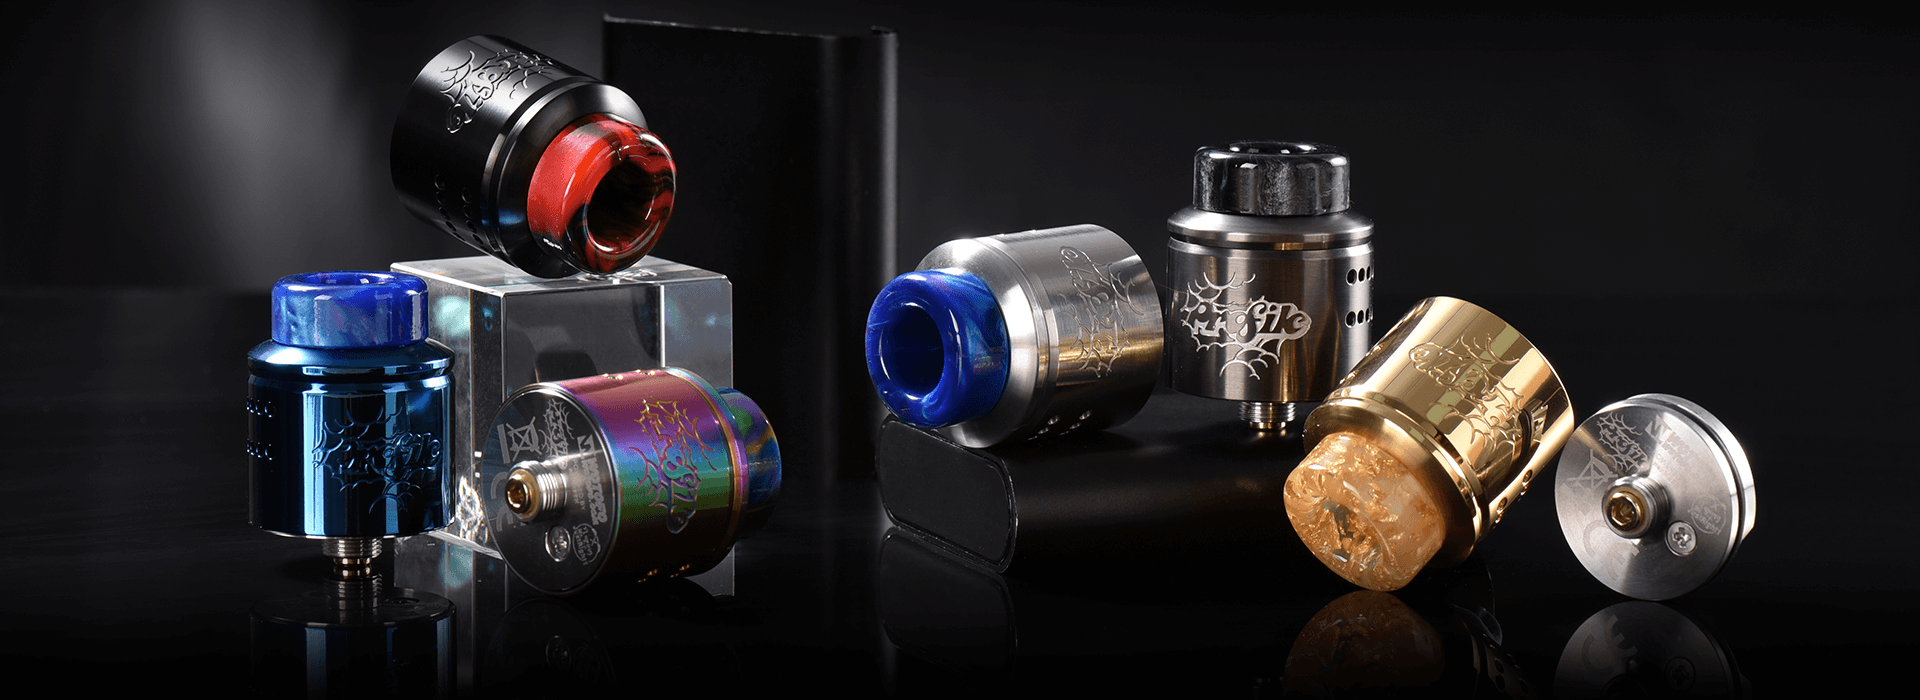 wotofo profile 1.5 rda banner pc